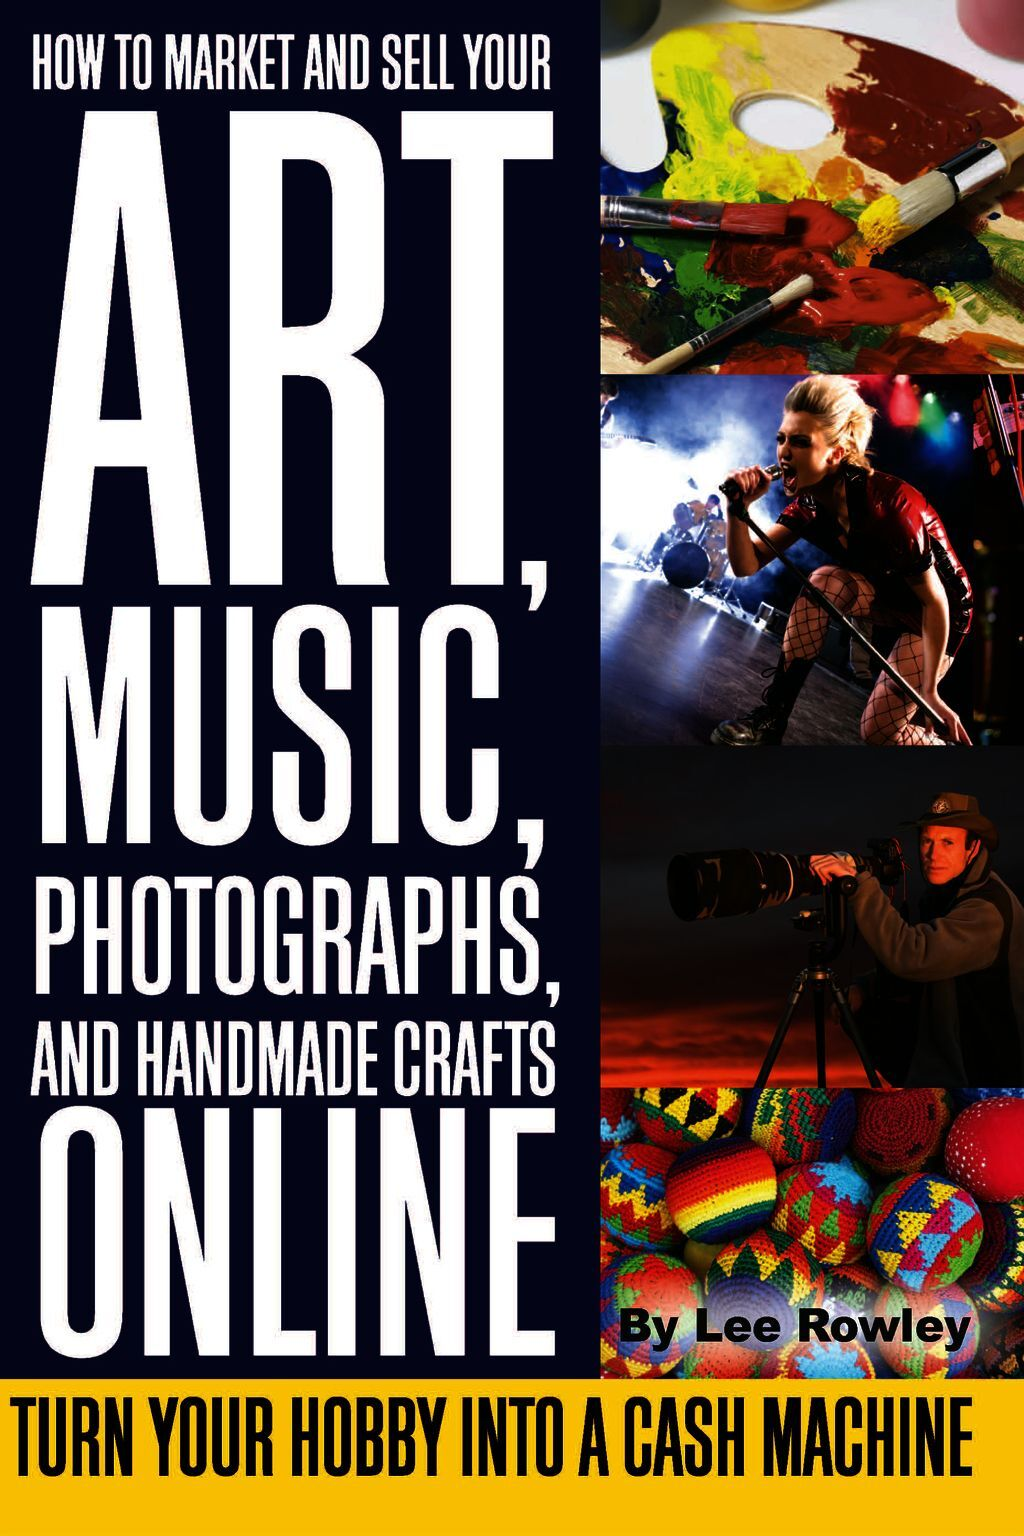 How To Market And Sell Your Art, Music, Photographs, & Handmade Crafts Online